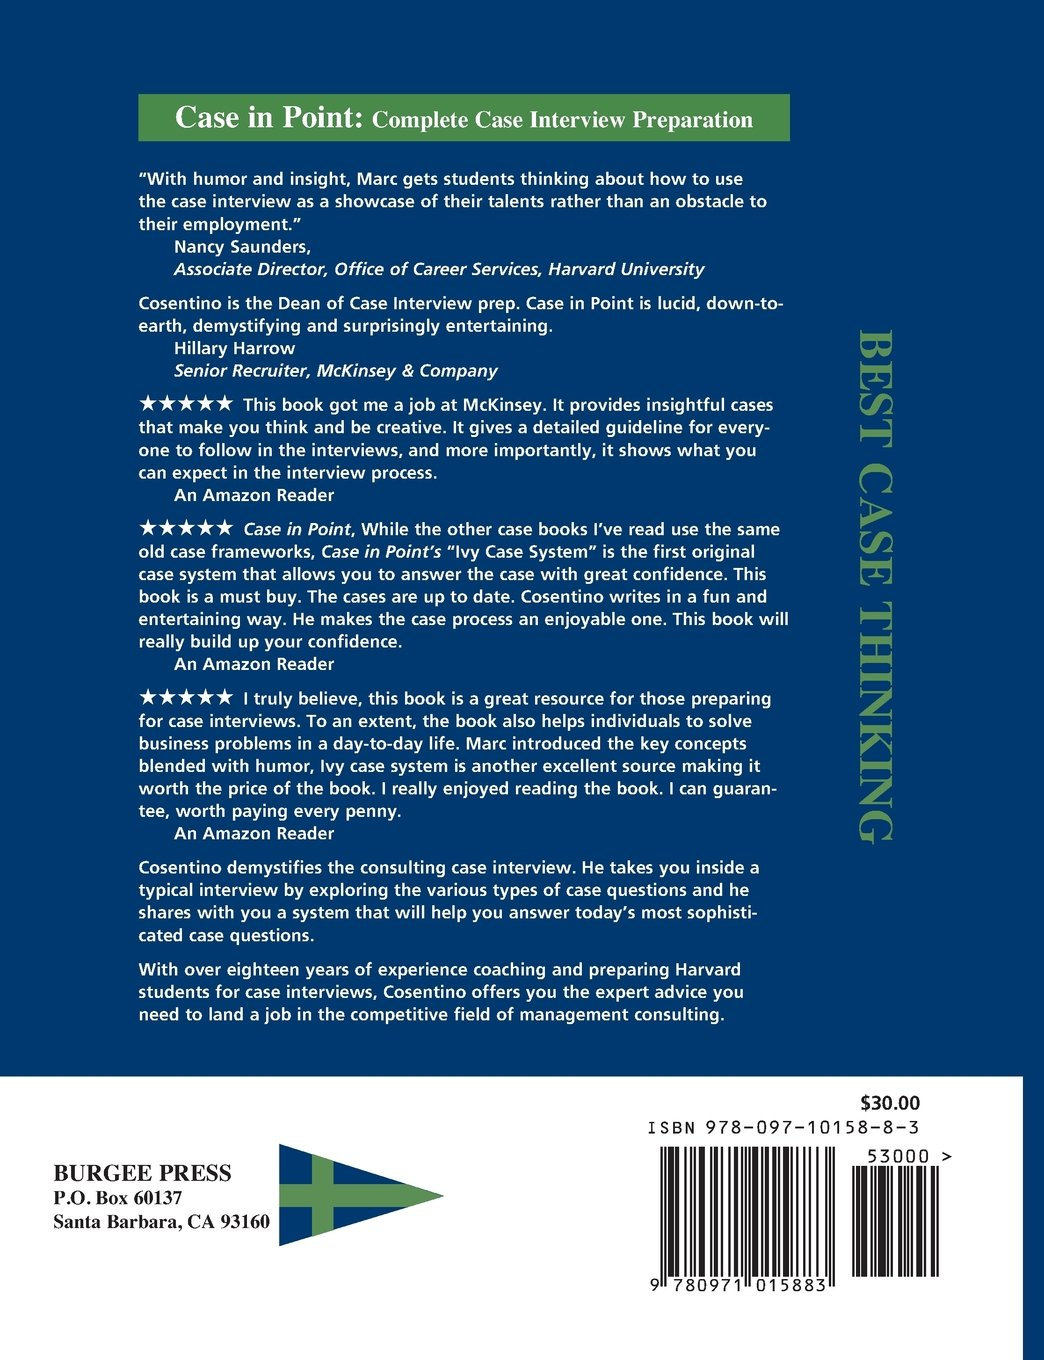 Case In Point: Complete Case Interview Preparation, 8th Edition by Burgee Press